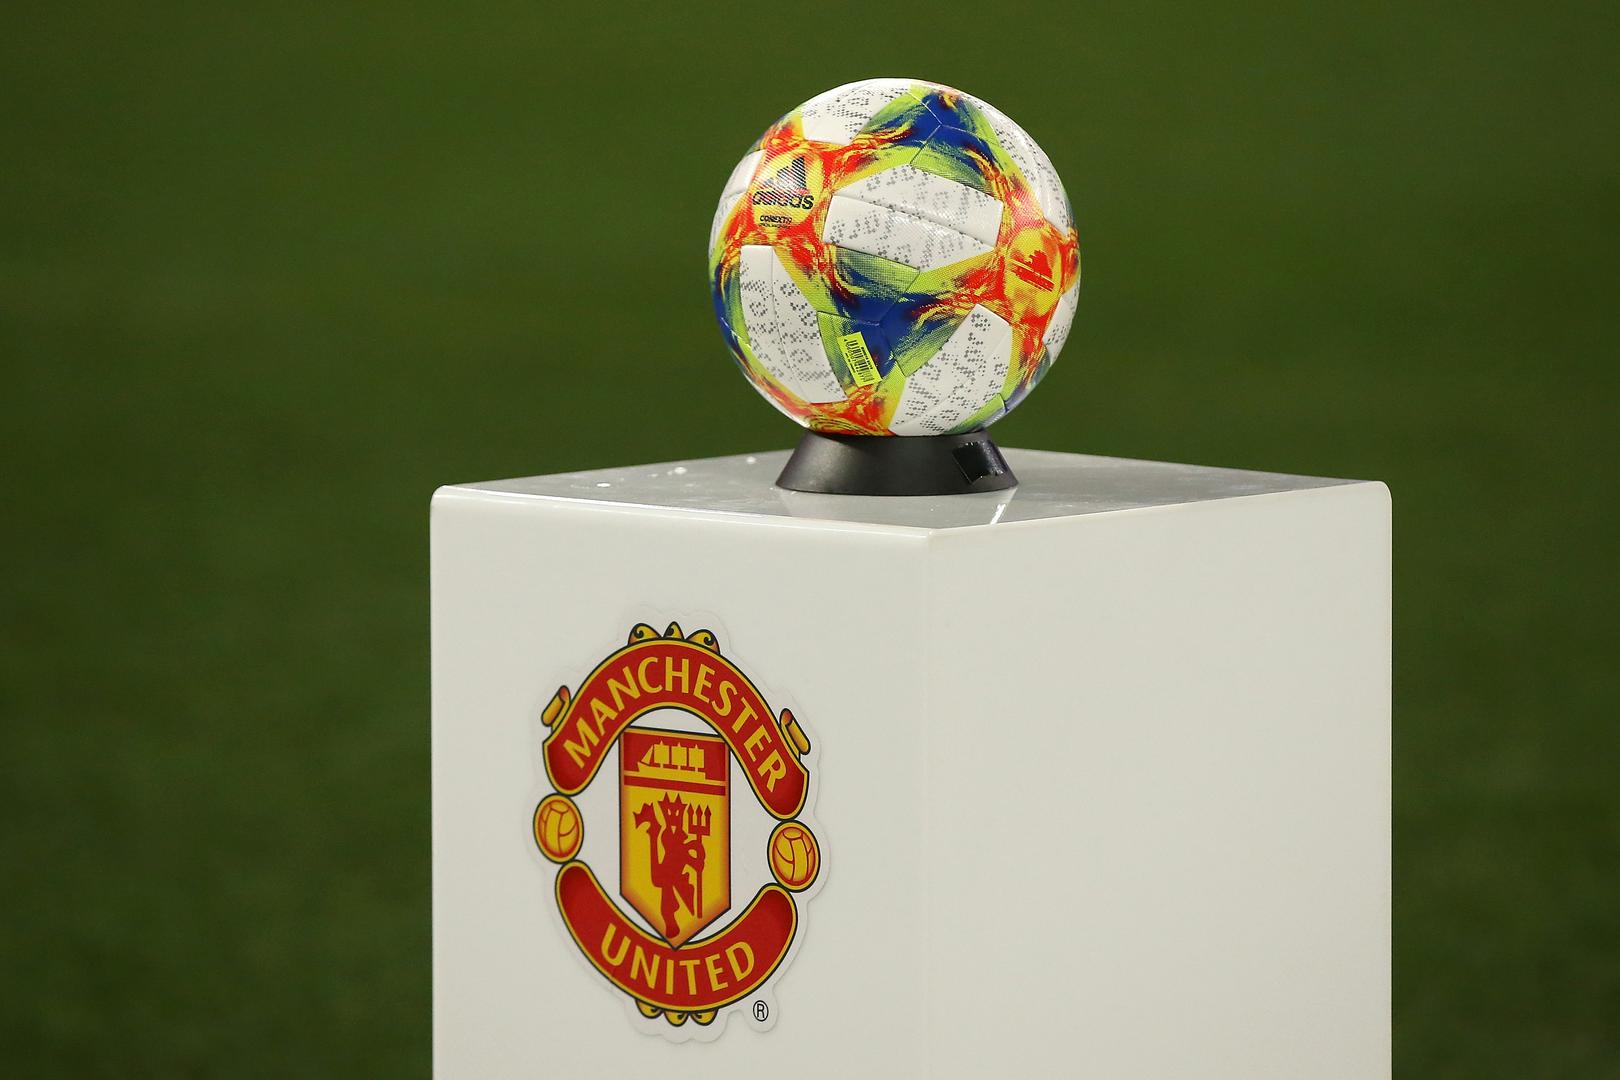 Match ball on a plinth before Manchester United v Perth Glory.